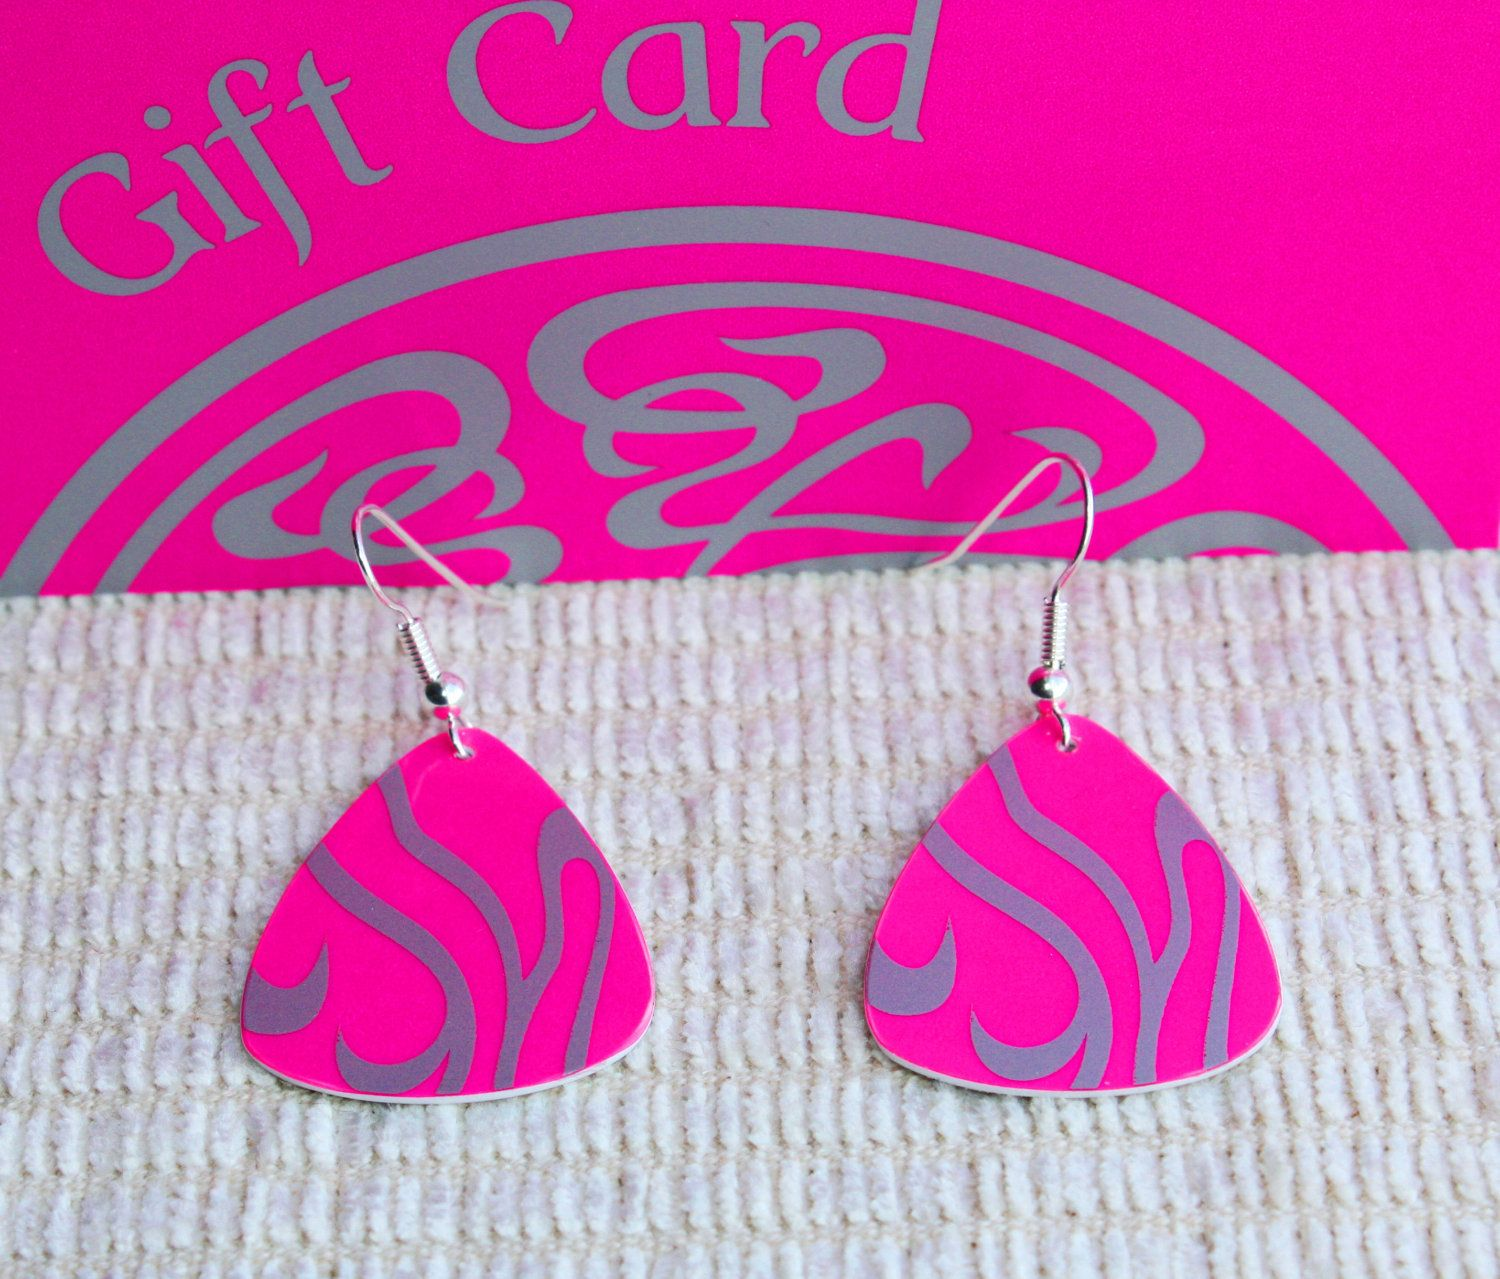 Guitar pick earring hot pink handmade from upcycled gift